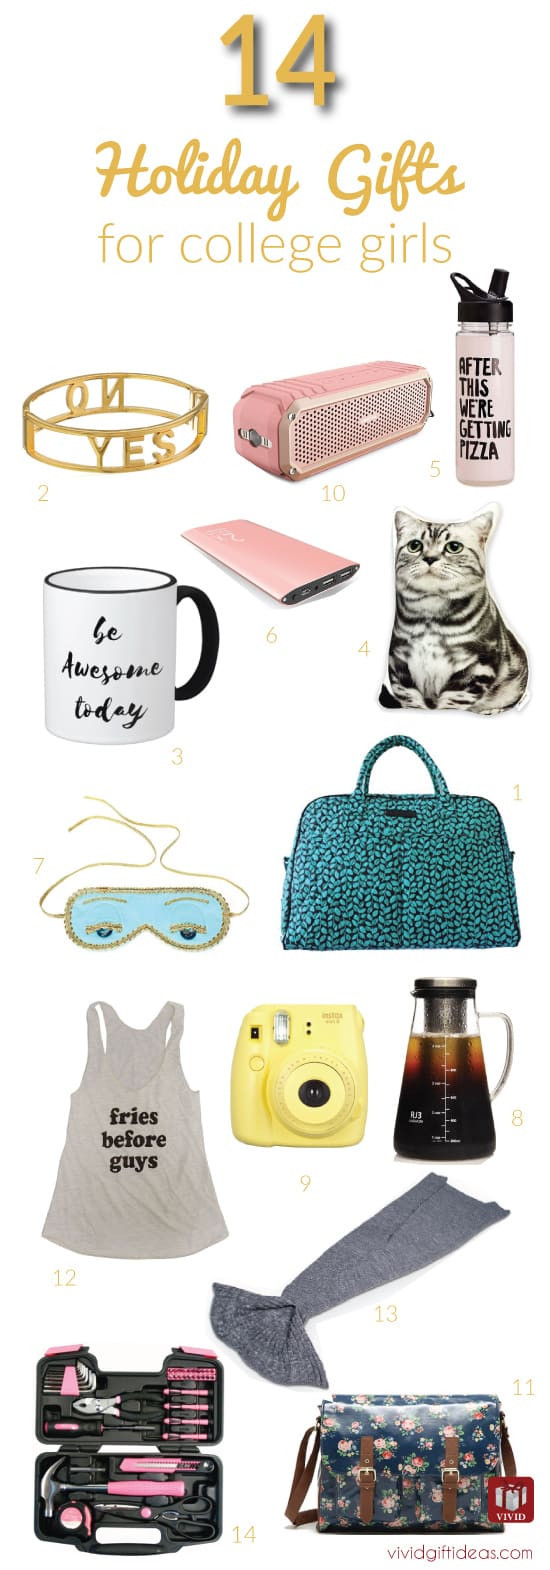 Gift Ideas For College Girls  14 Great Christmas Gift Ideas for College Girls Vivid s